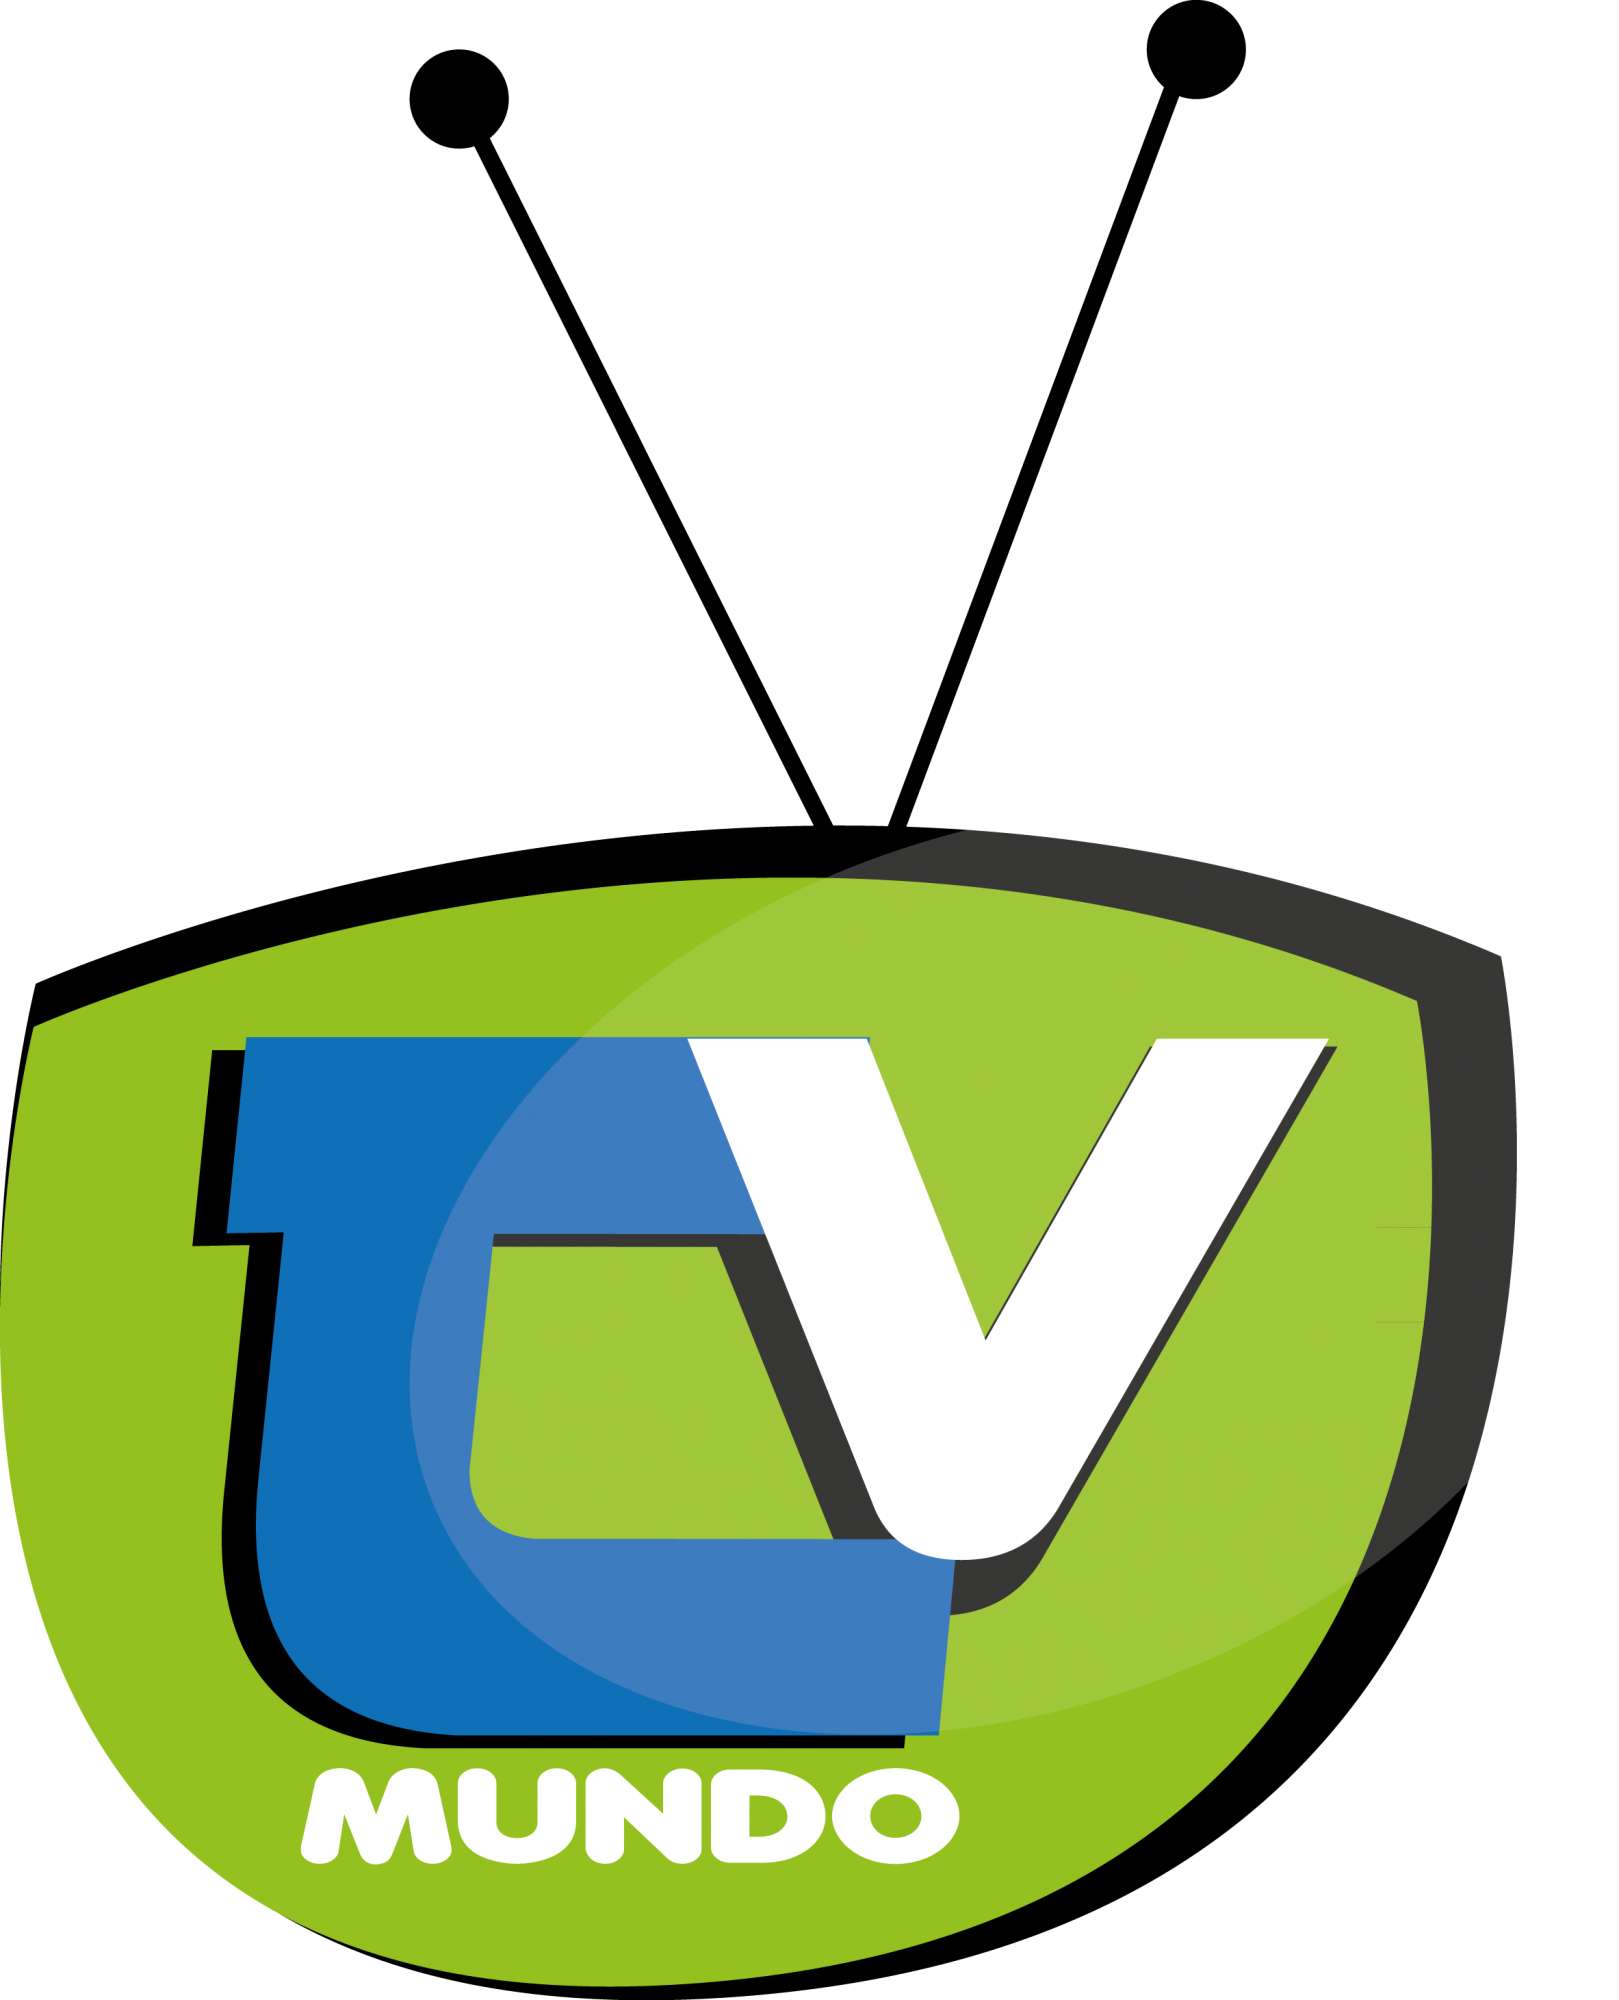 Mundo vector. Tv logo brands of